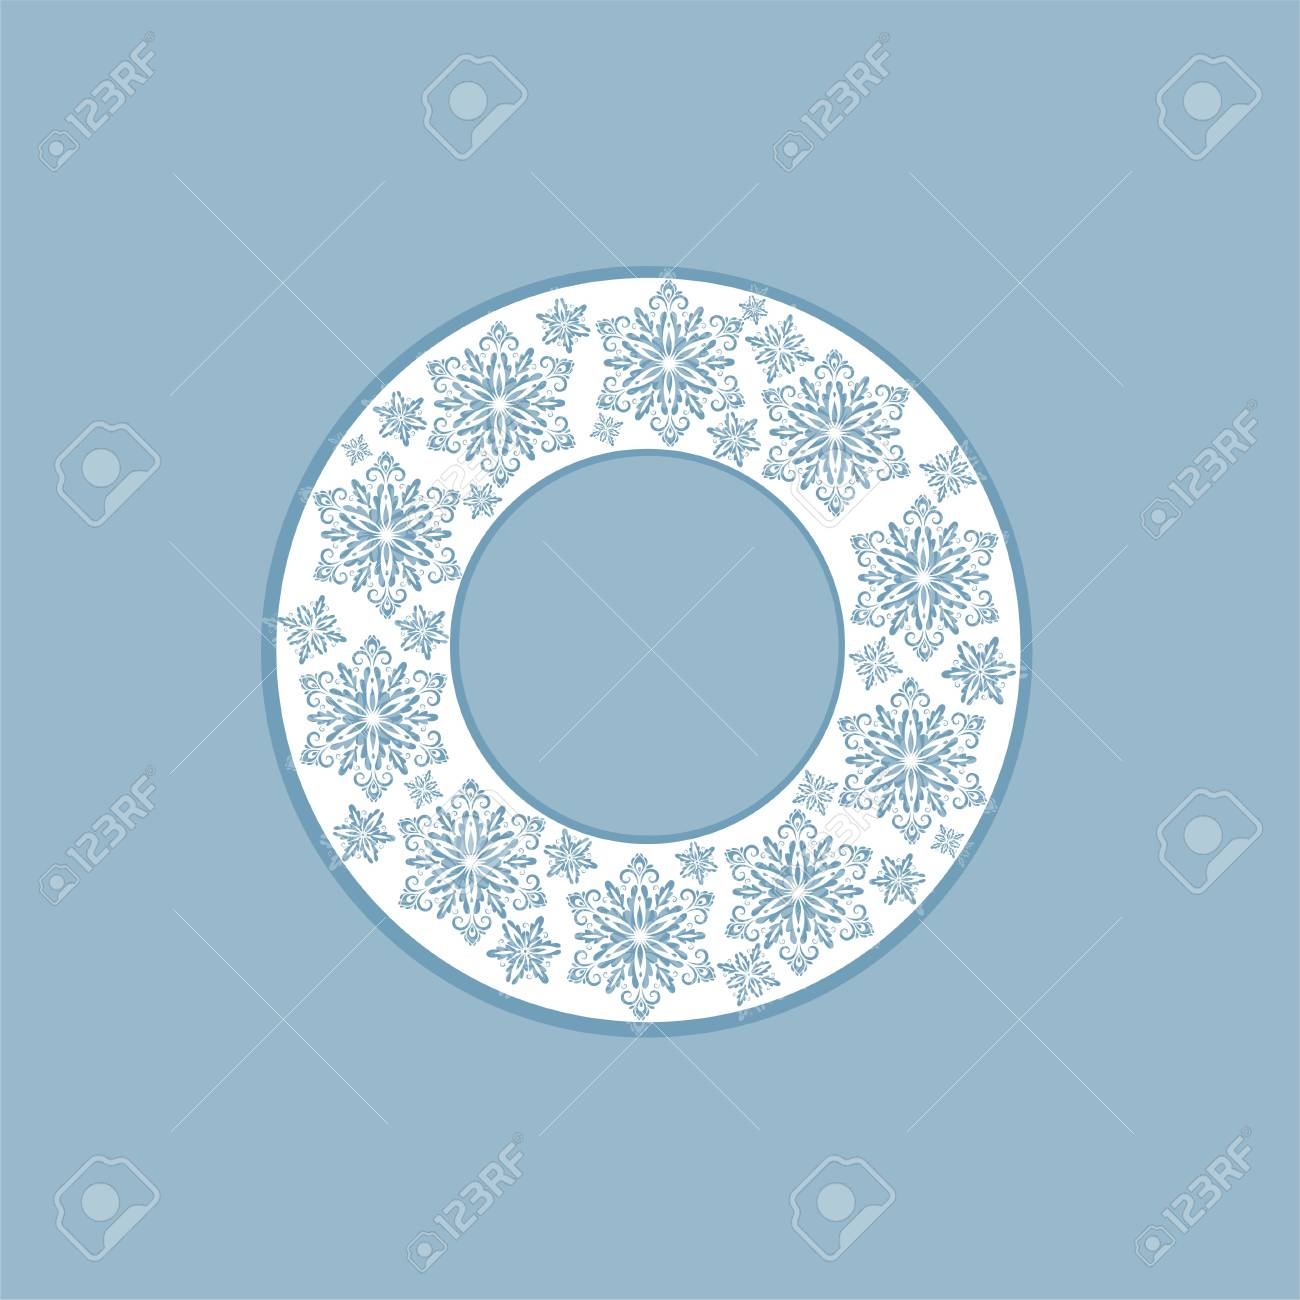 Laser Cut Out Christmas Wreath With Snowflakes. Template For ...